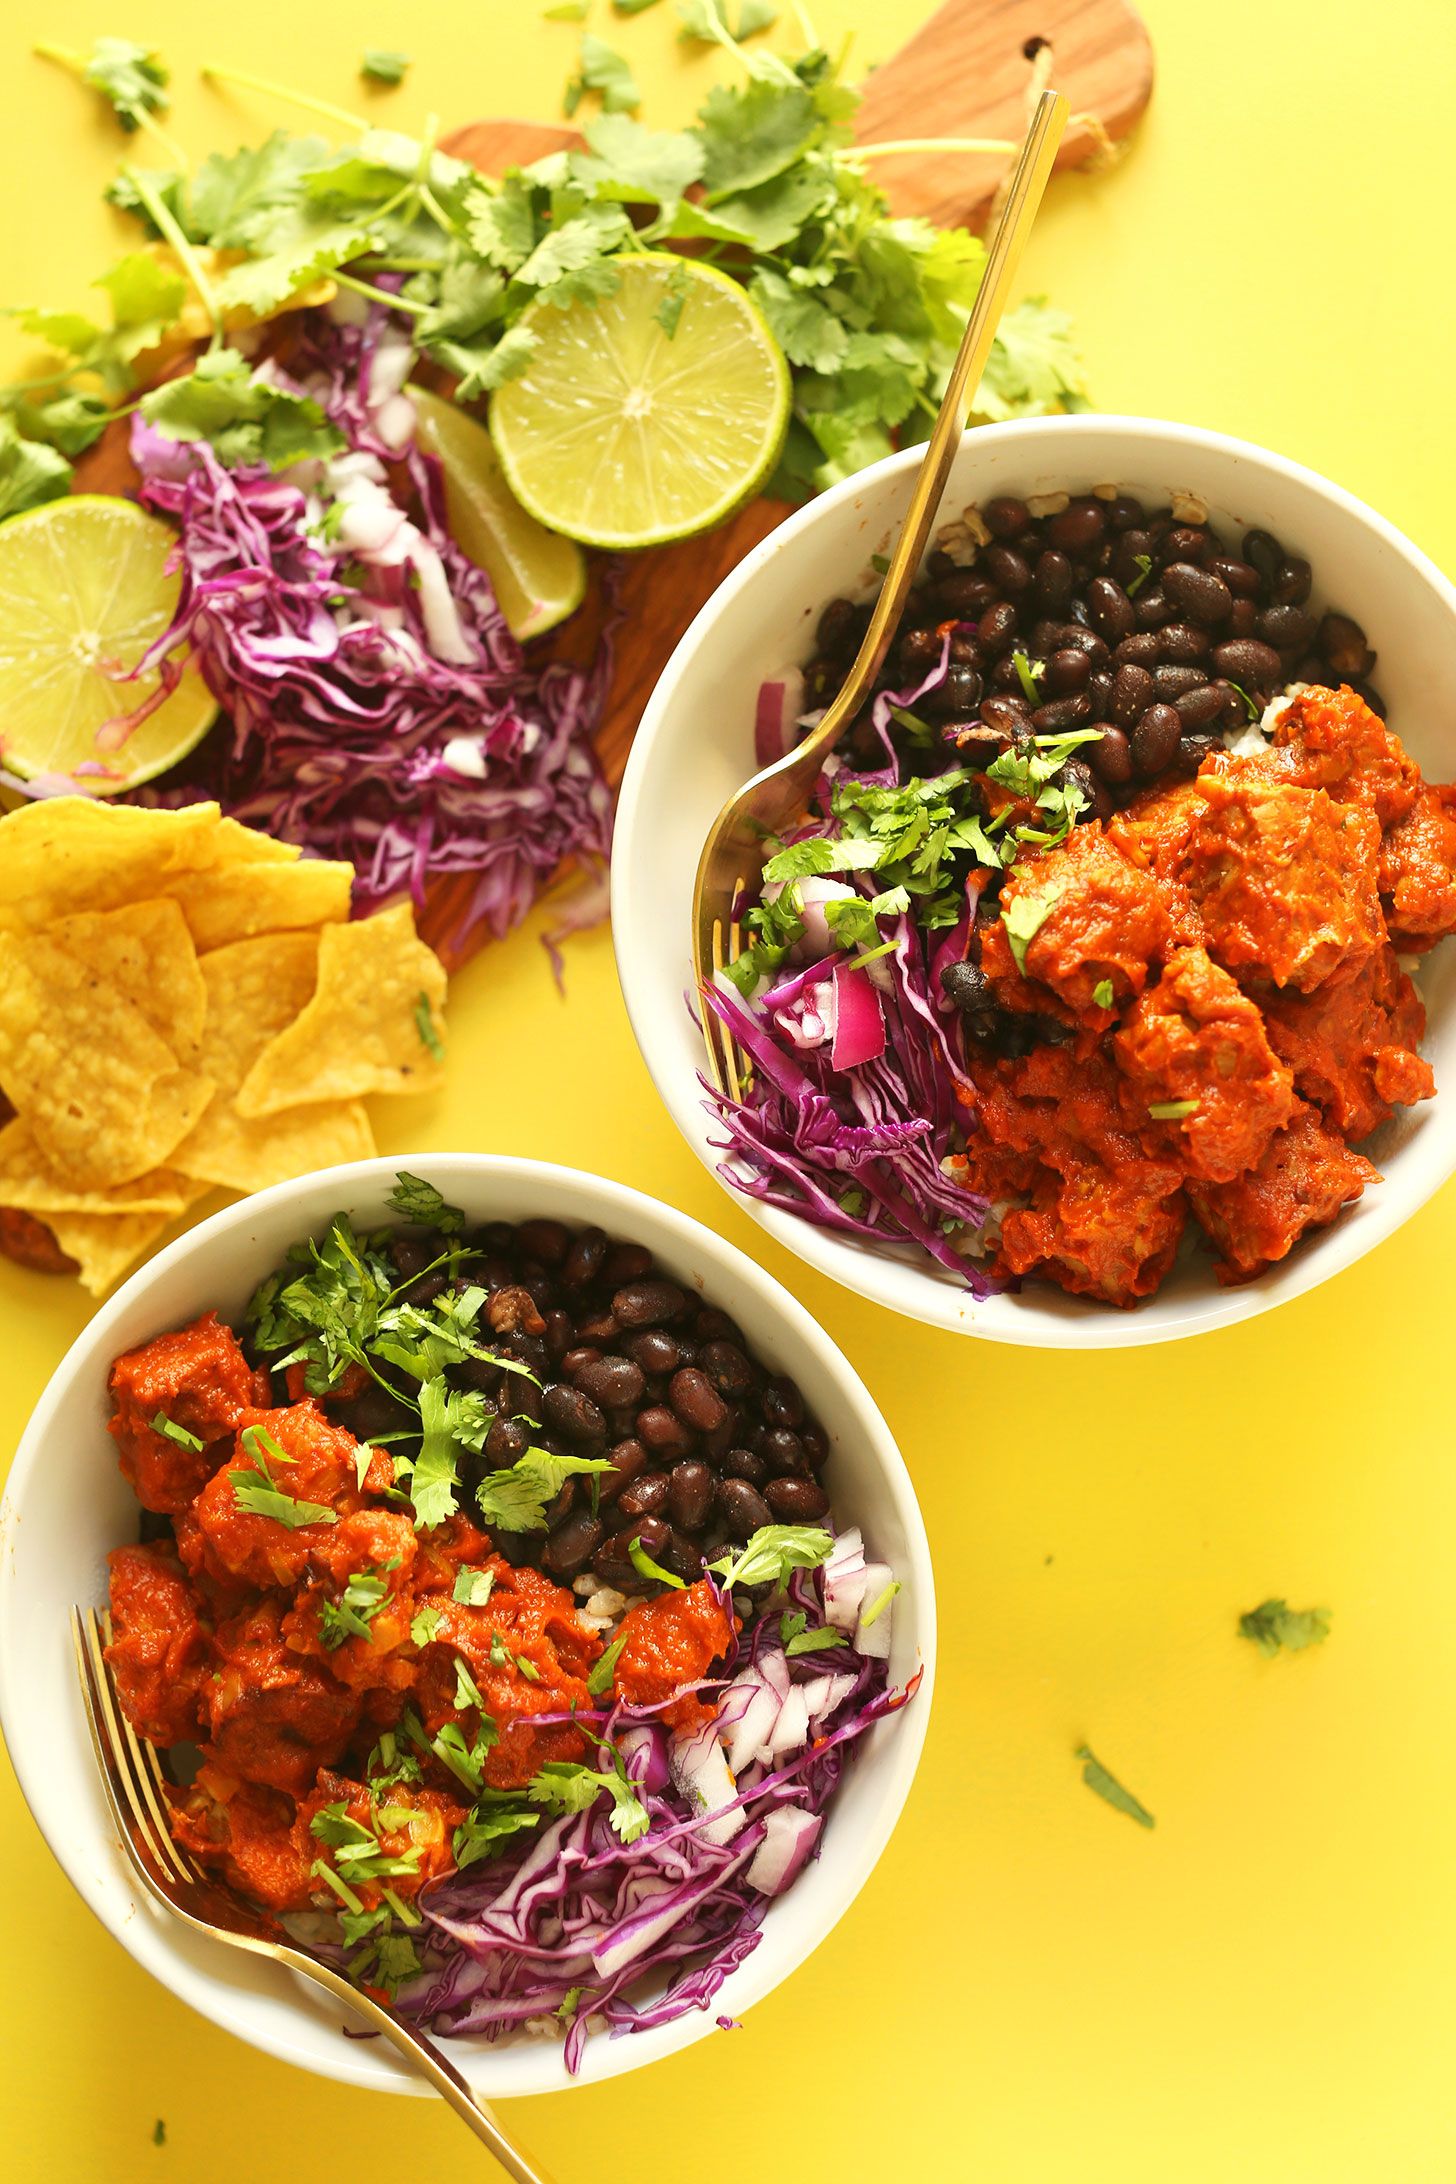 Two servings of our Smoky Tempeh Burrito Bowls recipe alongside ingredients used to make it